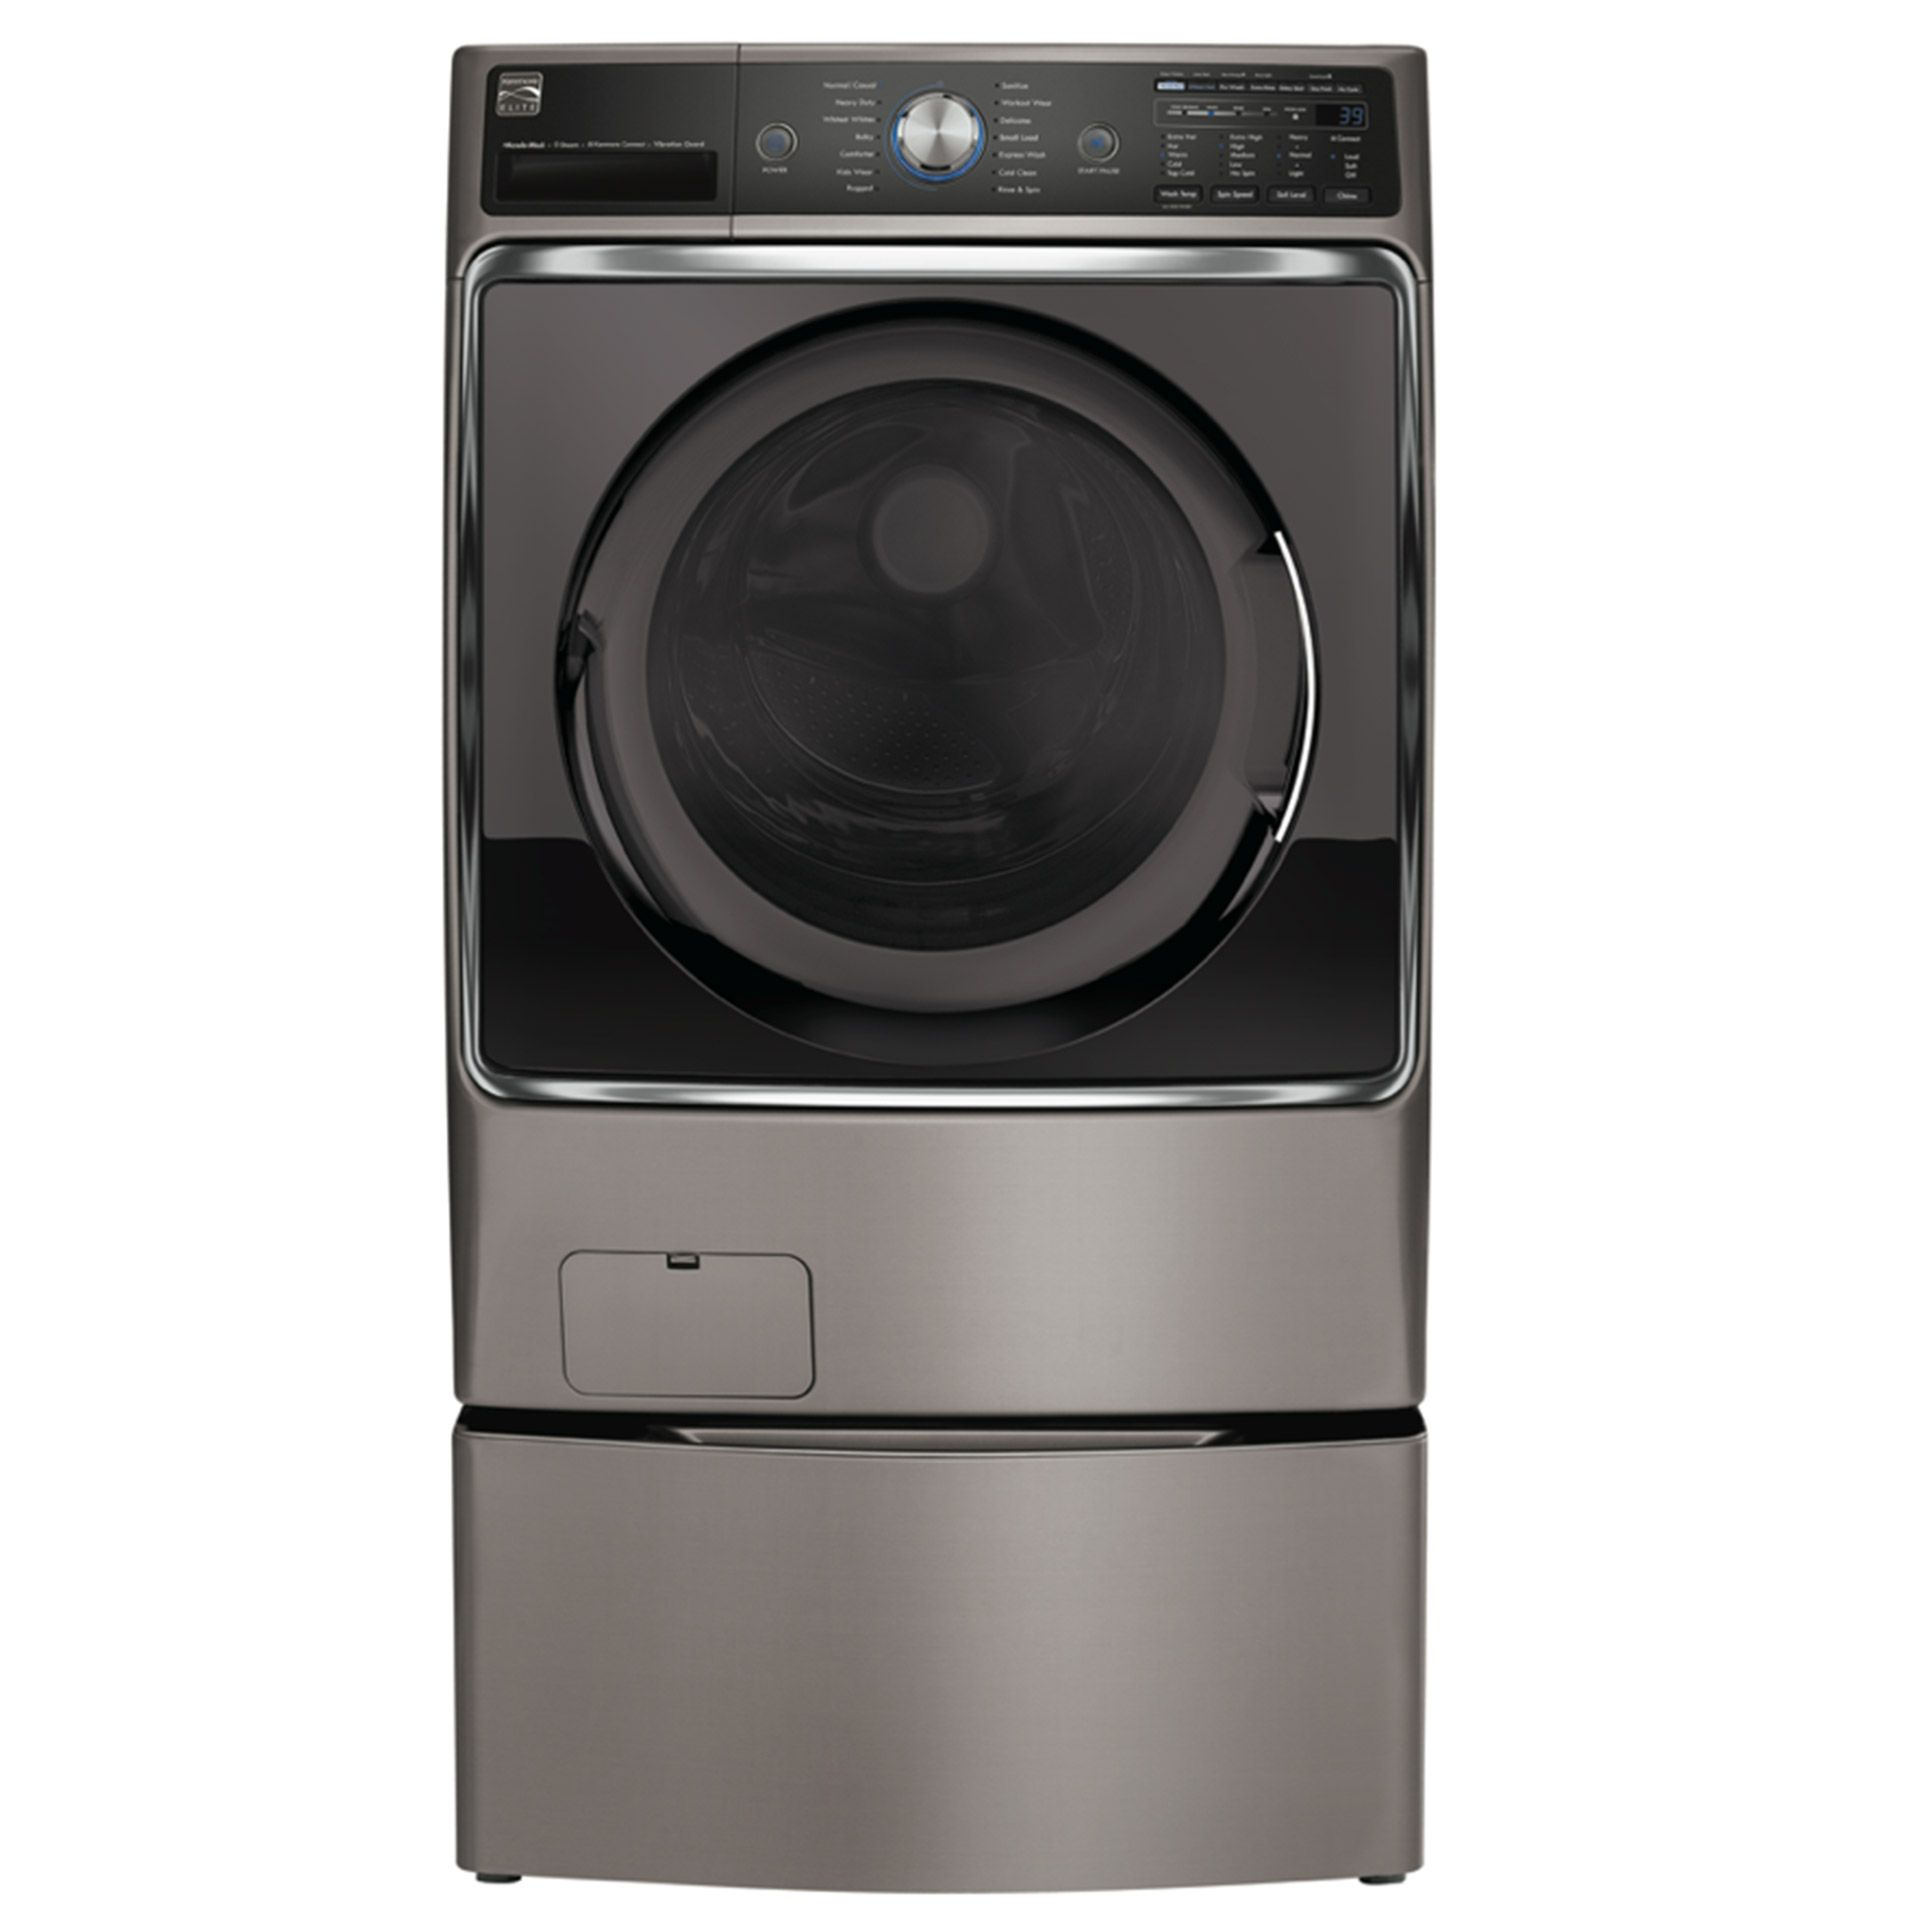 Kenmore Elite 5.2 cu. ft. Front-Load Washer #41073 Review